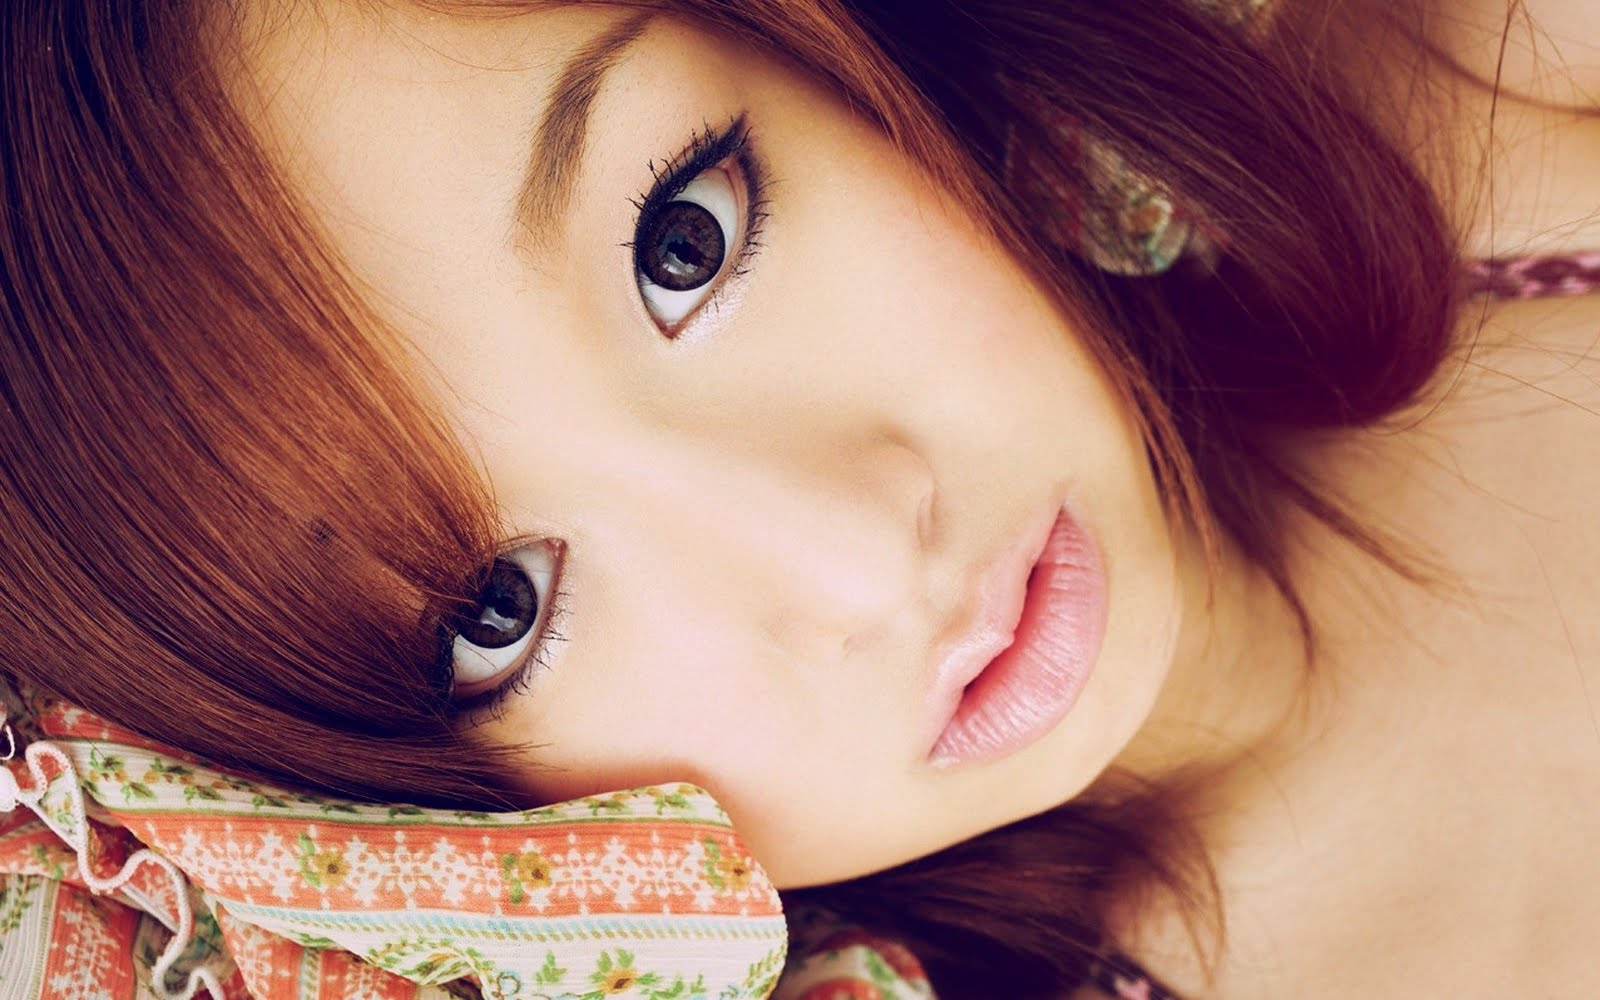 cute faces japanese models wallpapers